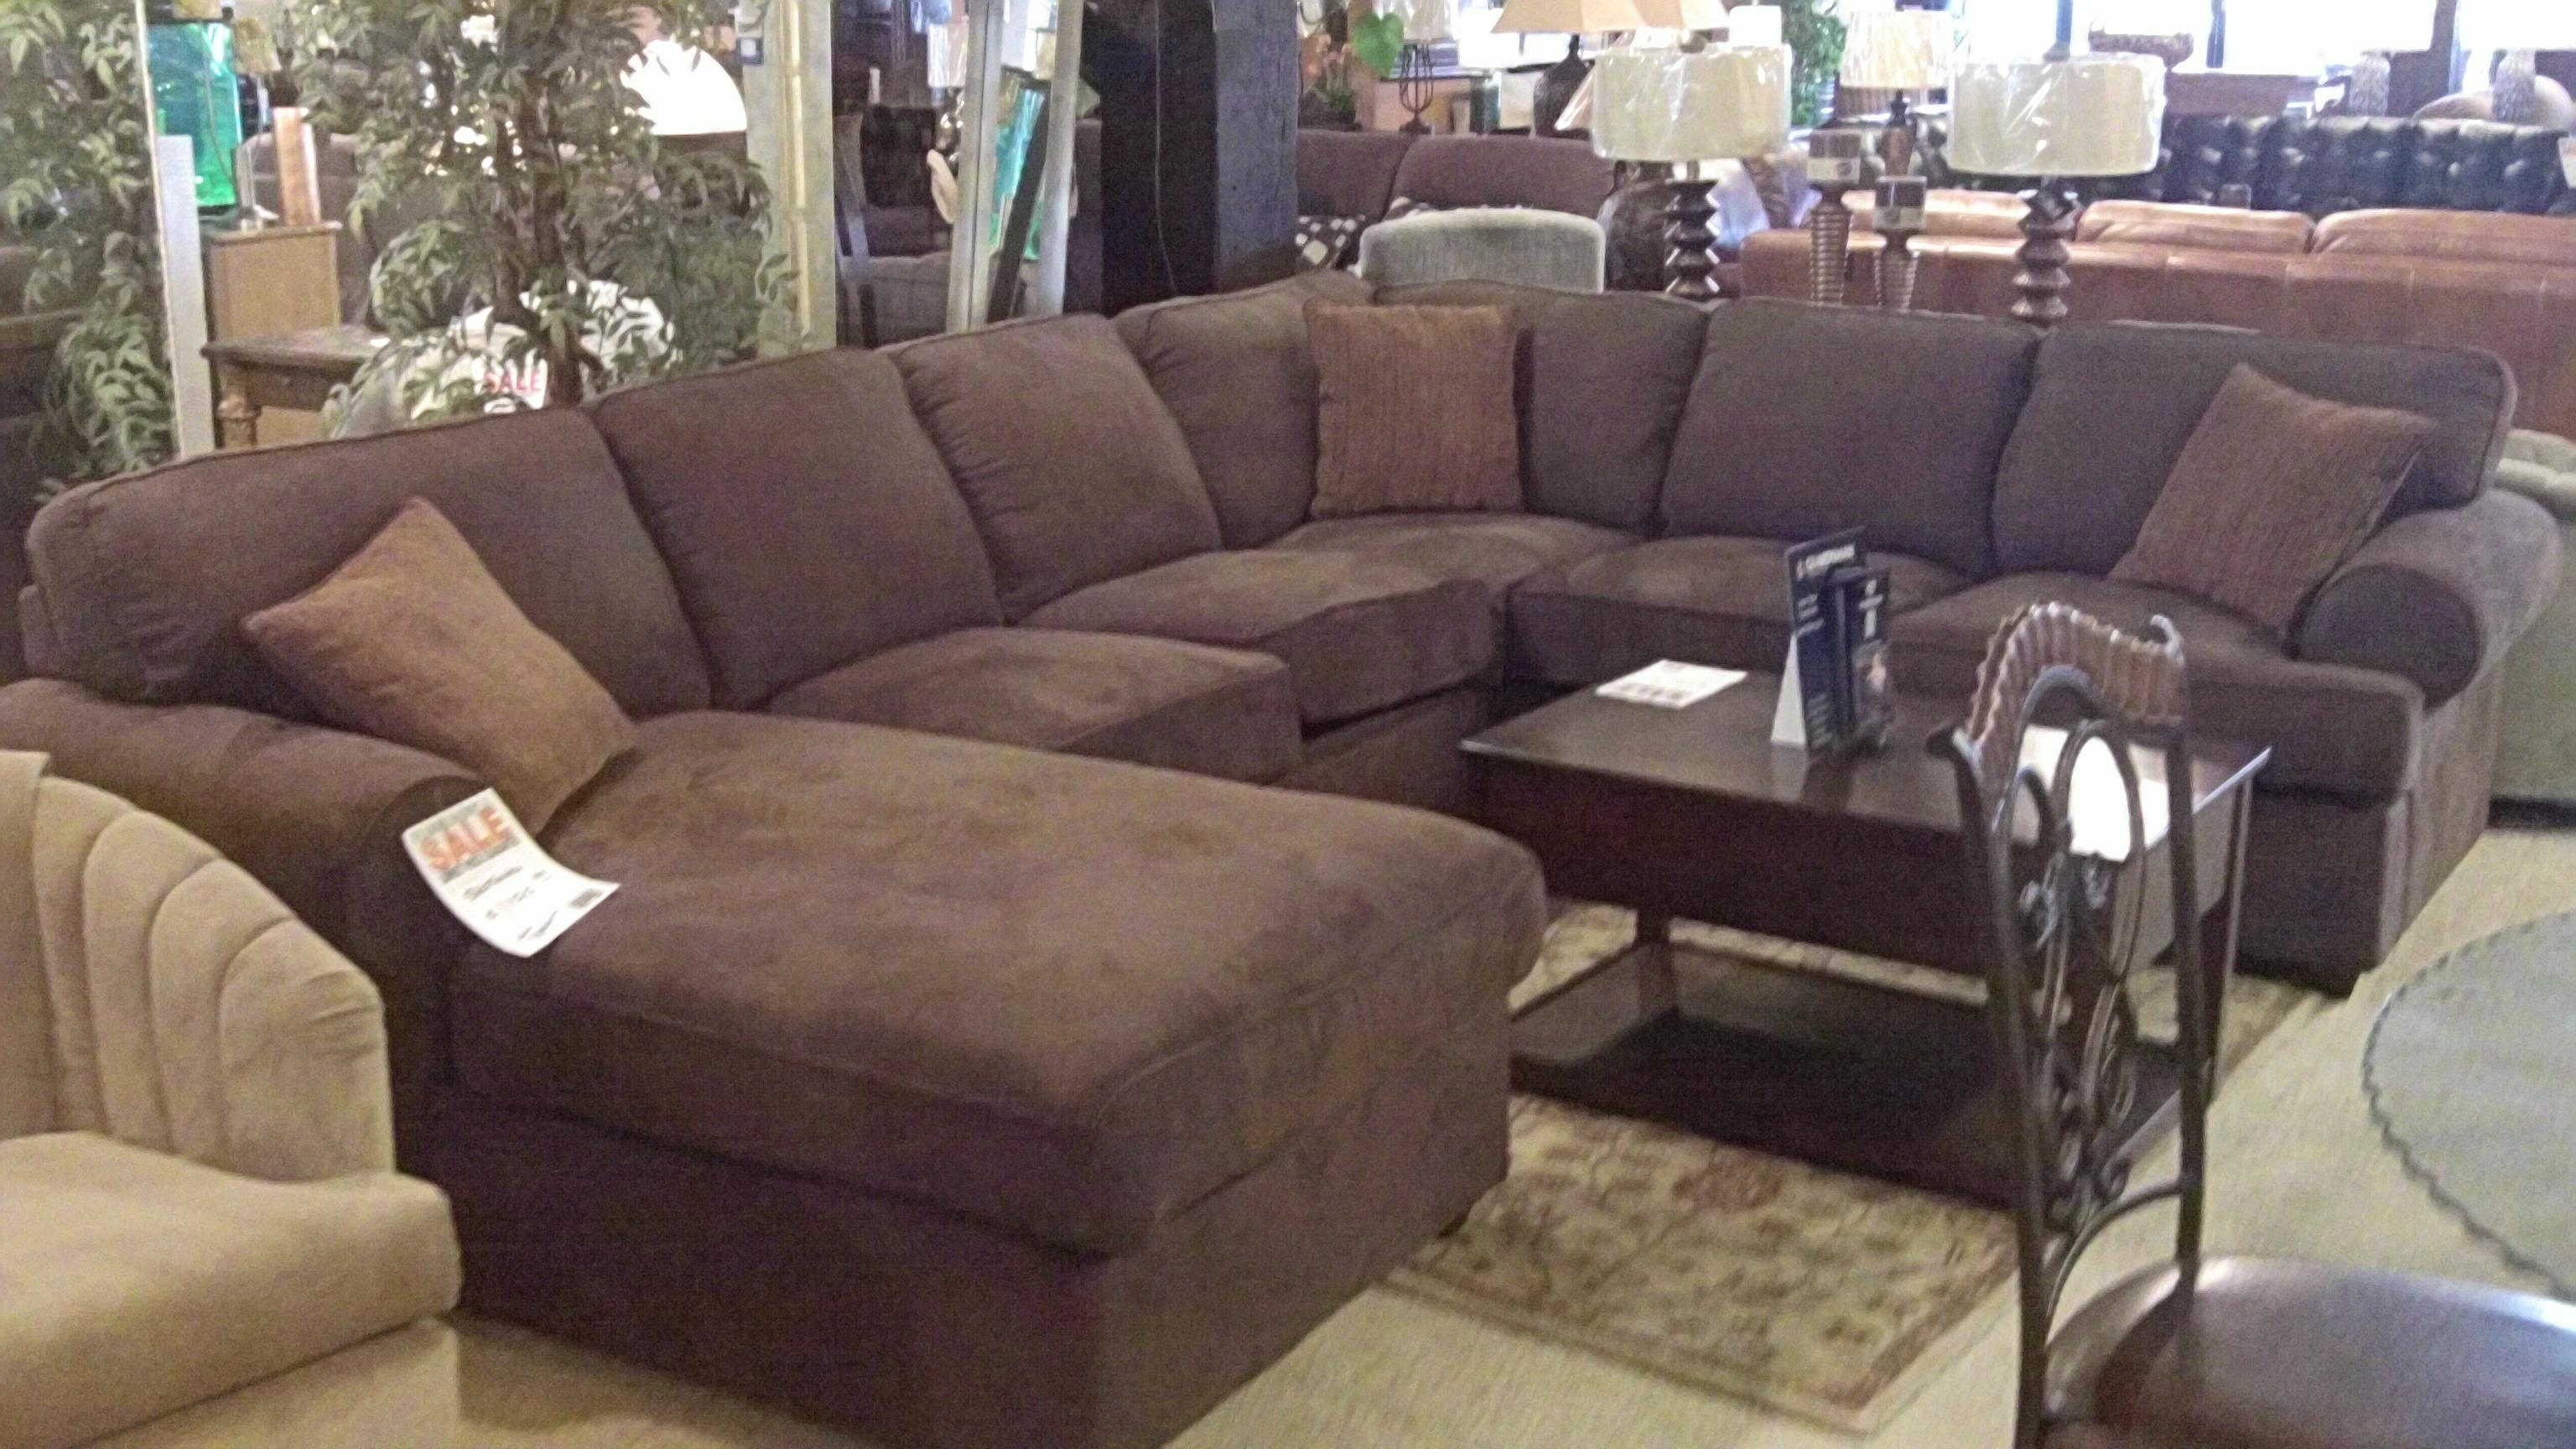 Furniture: Extra Large Sectional Sofa | Oversized Couches | Large Pertaining To Nice Sectional Couches (View 18 of 20)